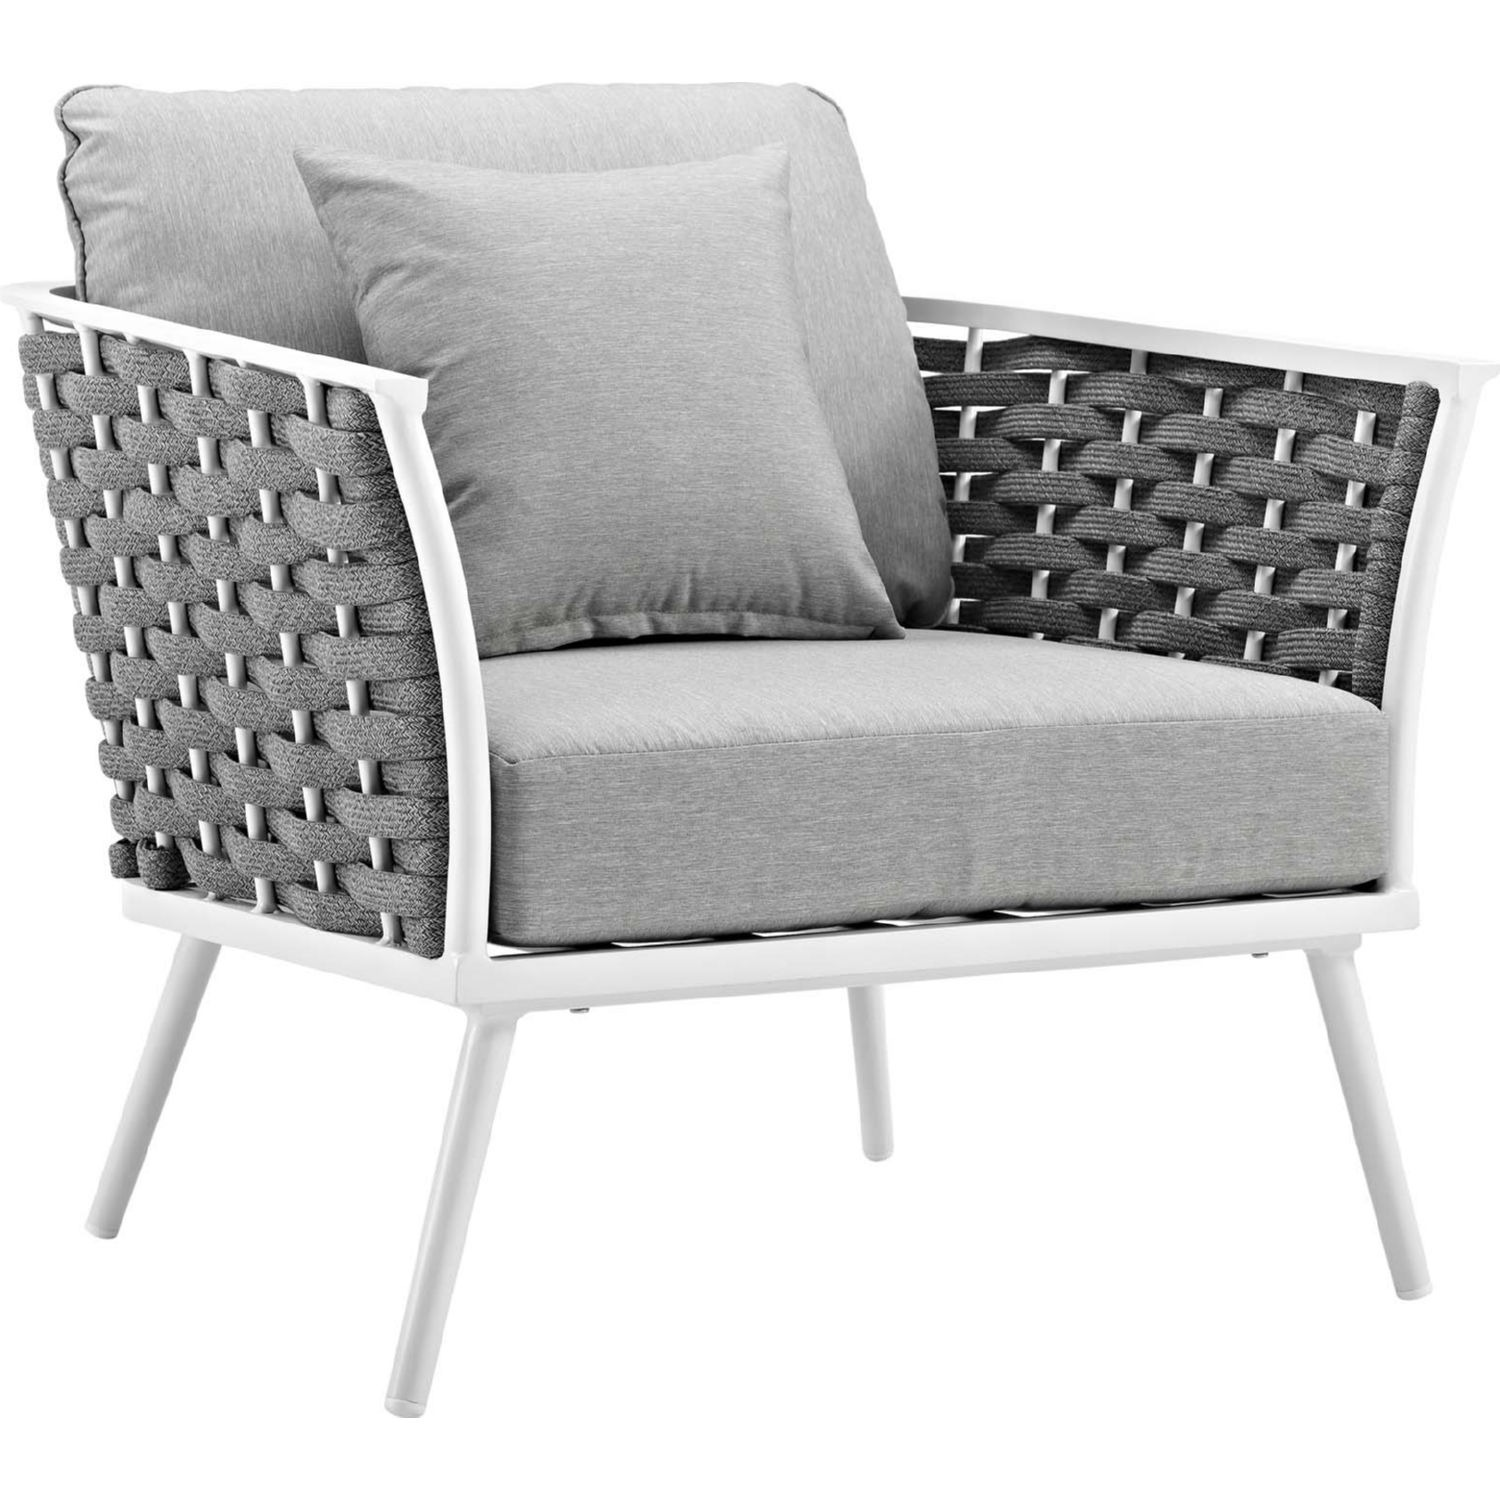 2-Piece Outdoor Sectional In Gray Foam Padding - image-5